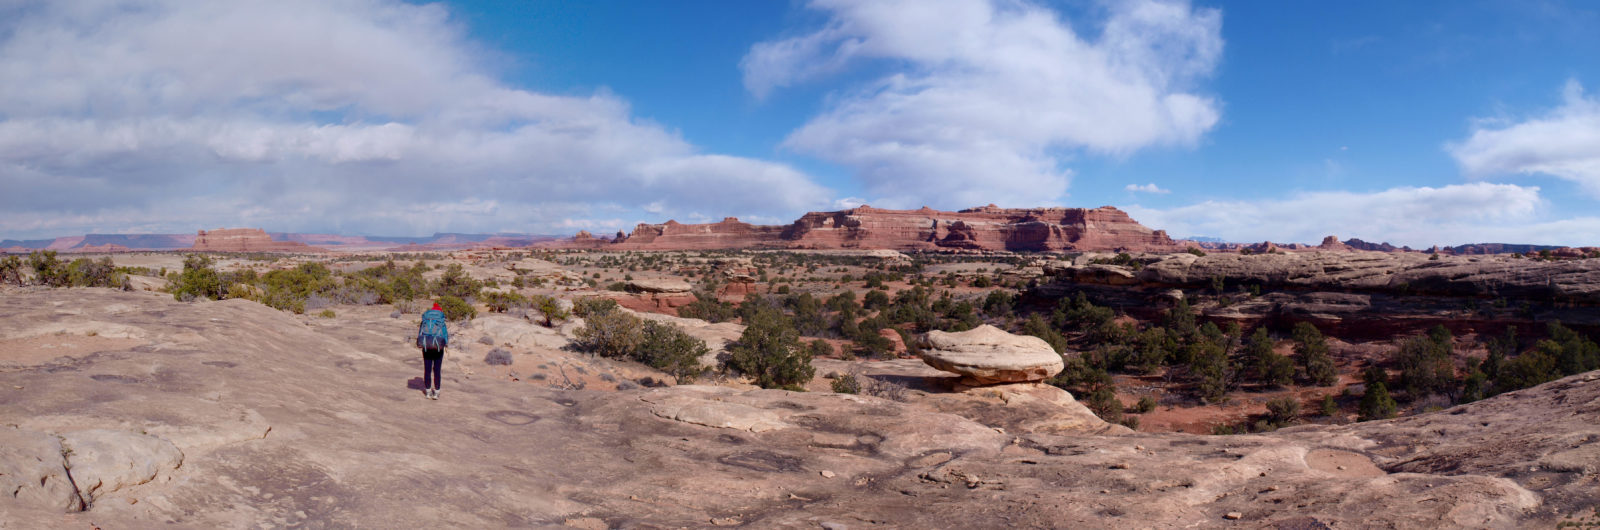 Hiking into Canyonlands